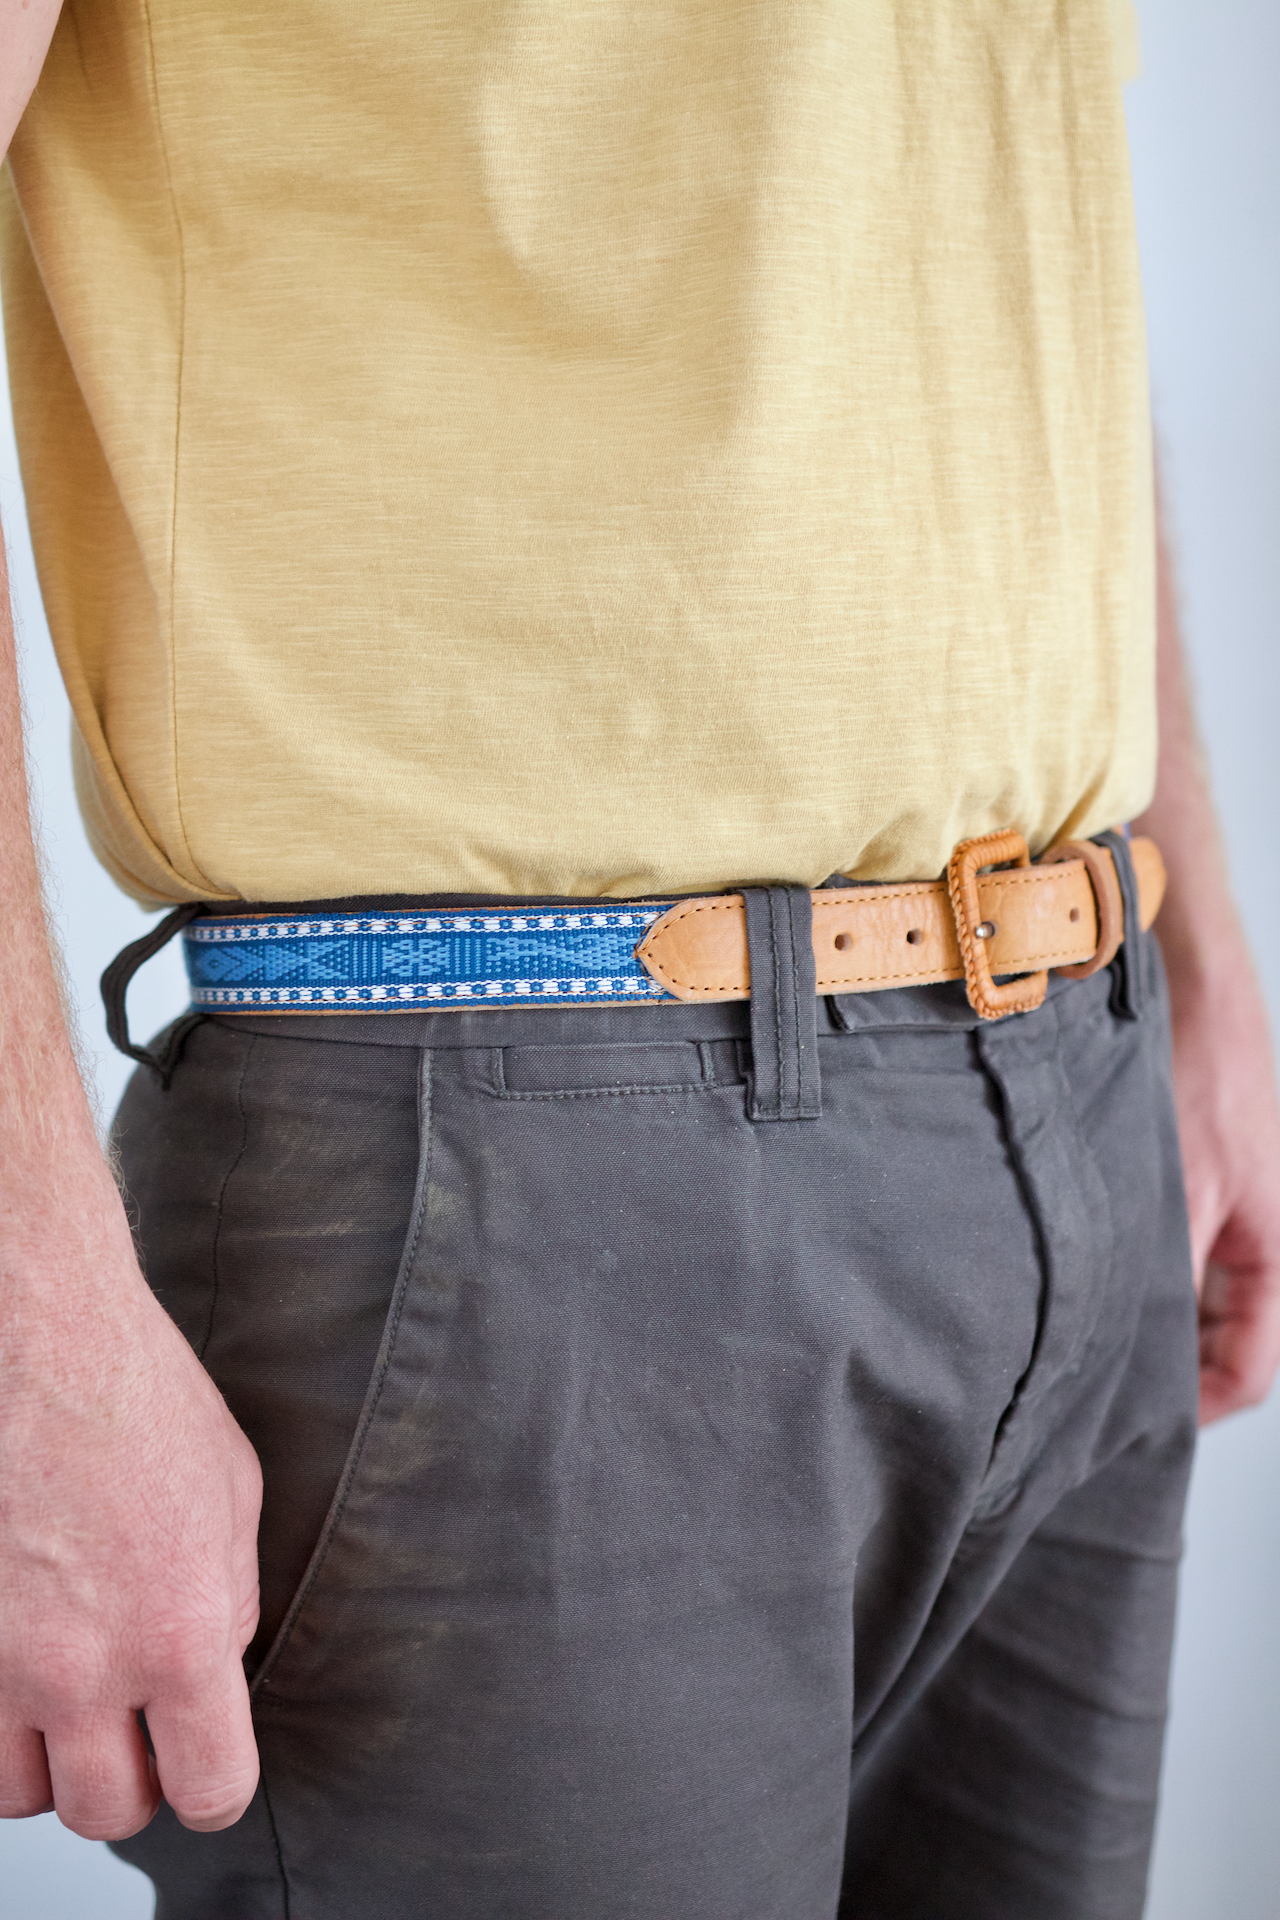 Santo Tomas Belt - Size 34 - Light Blue